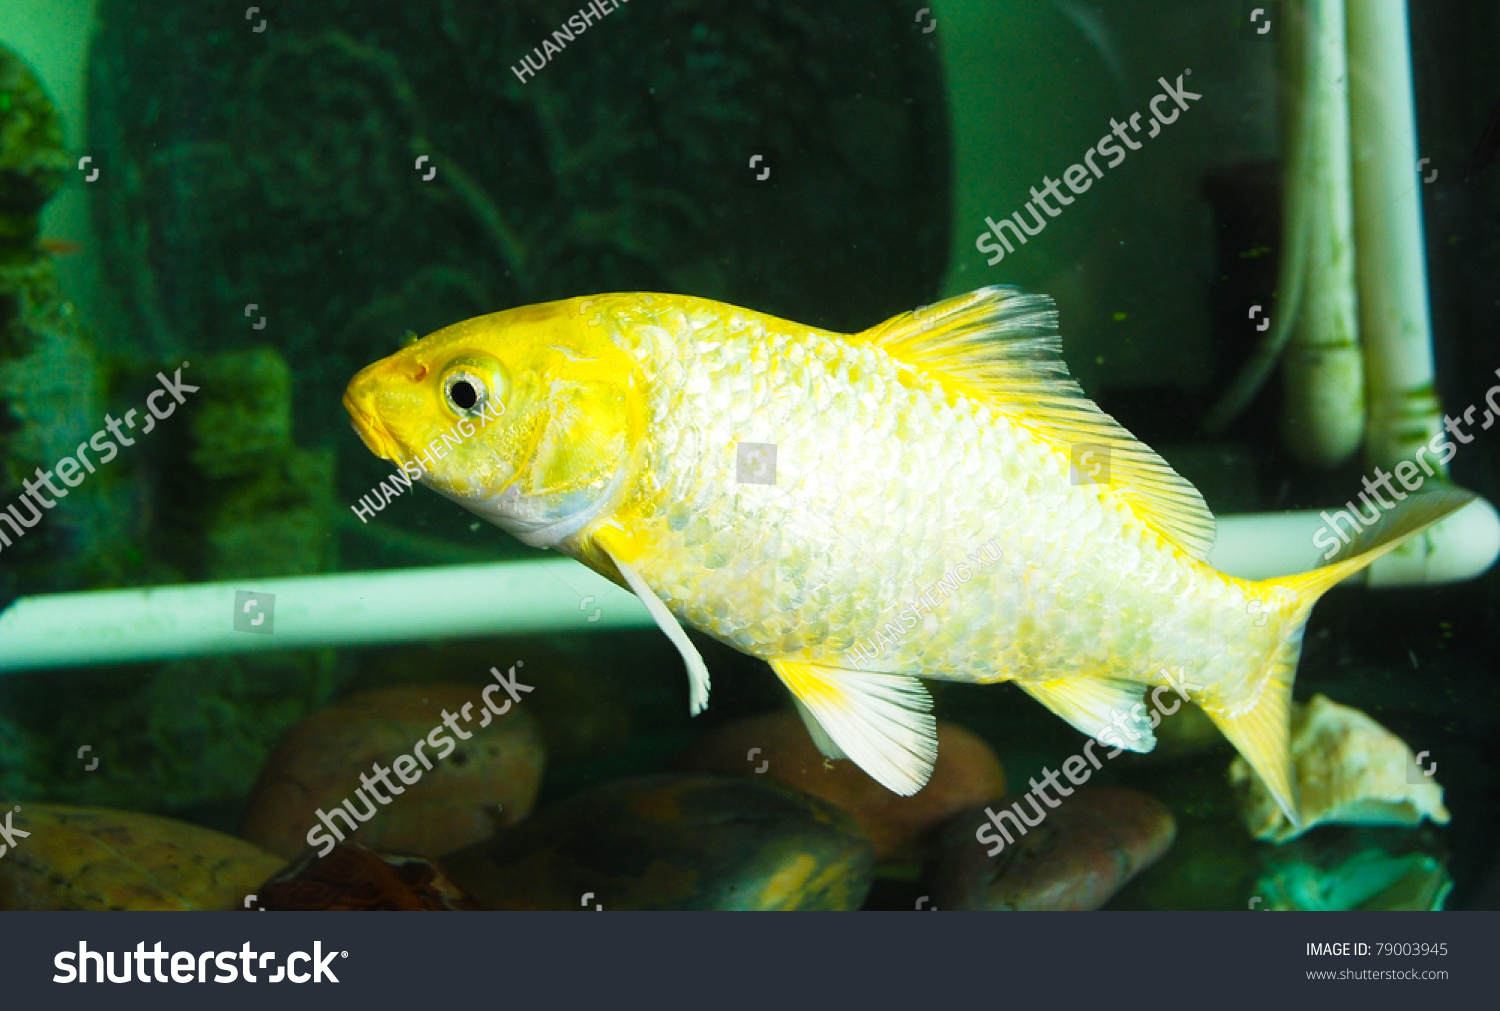 A yellow carp in a fish tank stock photo 79003945 for Carp in a fish tank